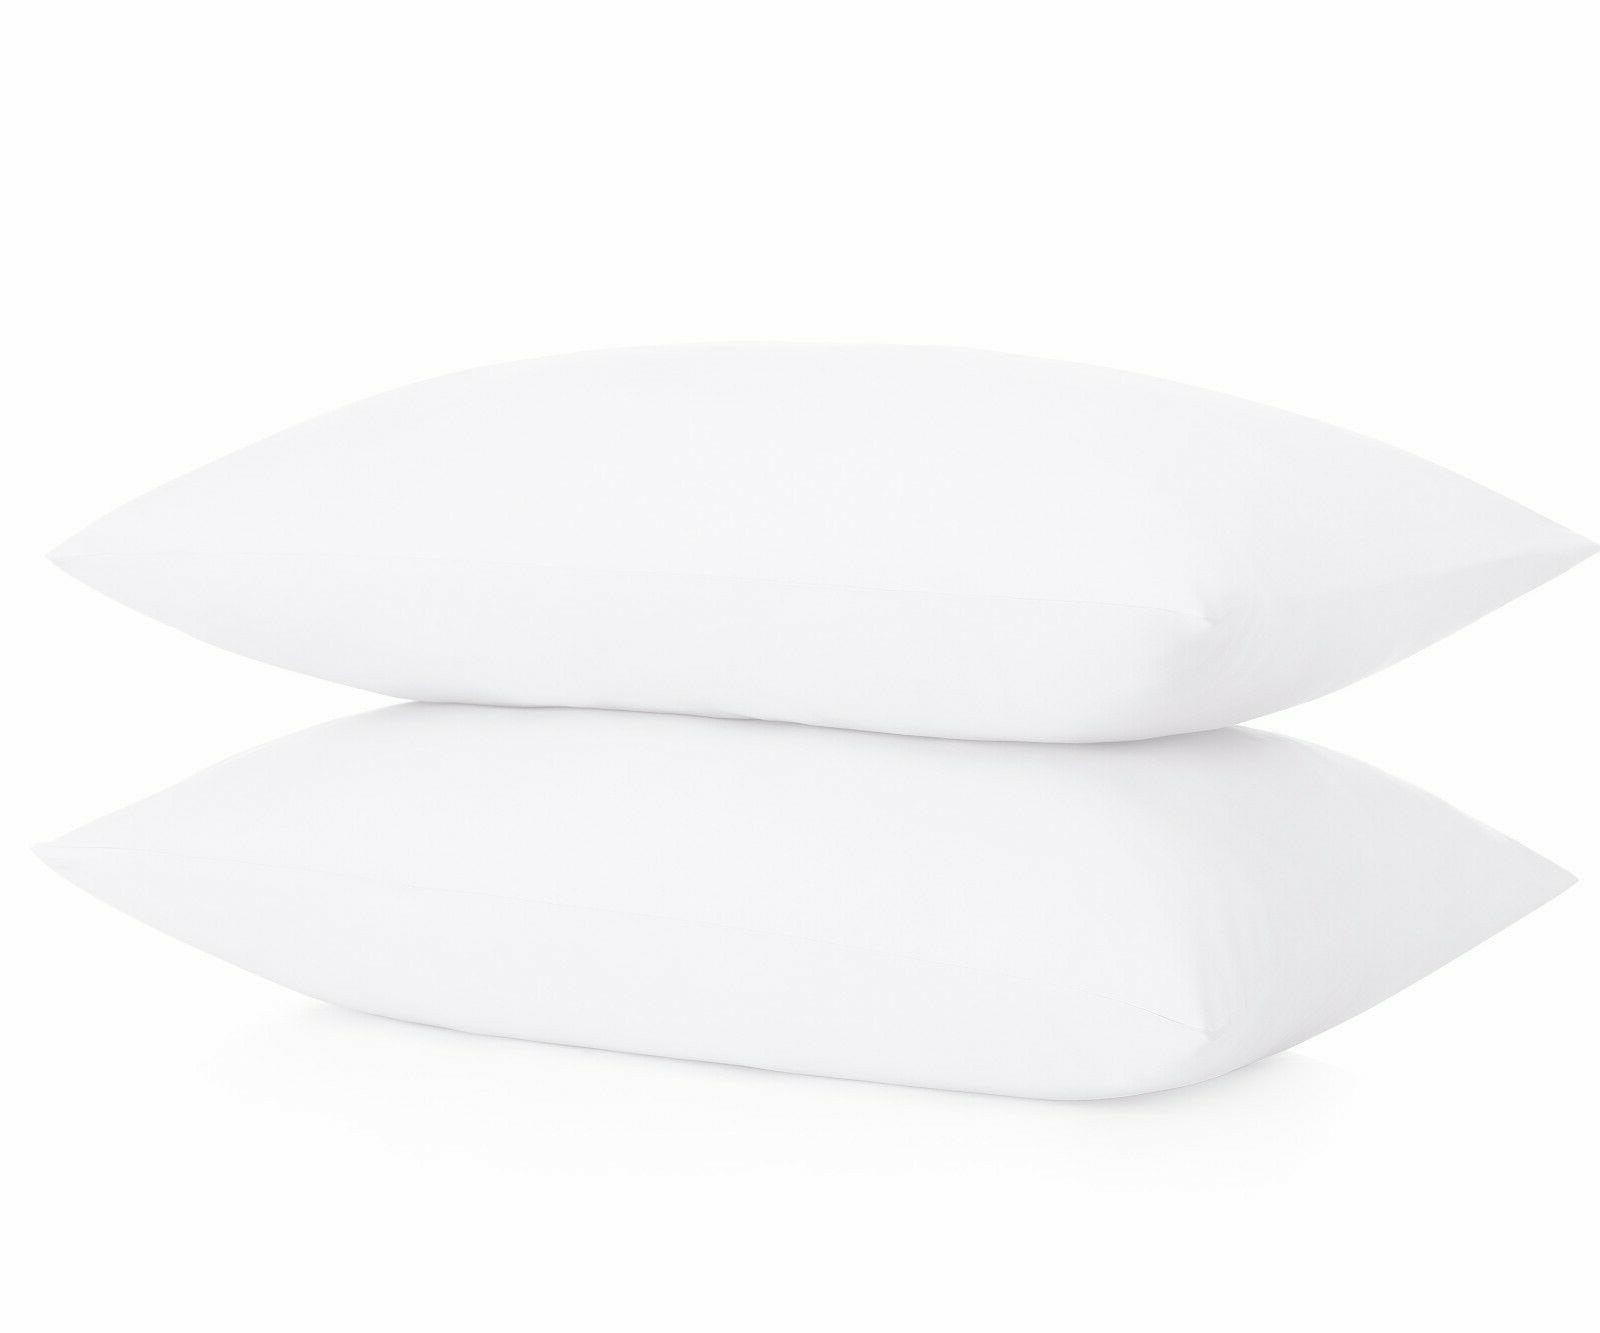 microfiber pillowcases set of 2 standard white